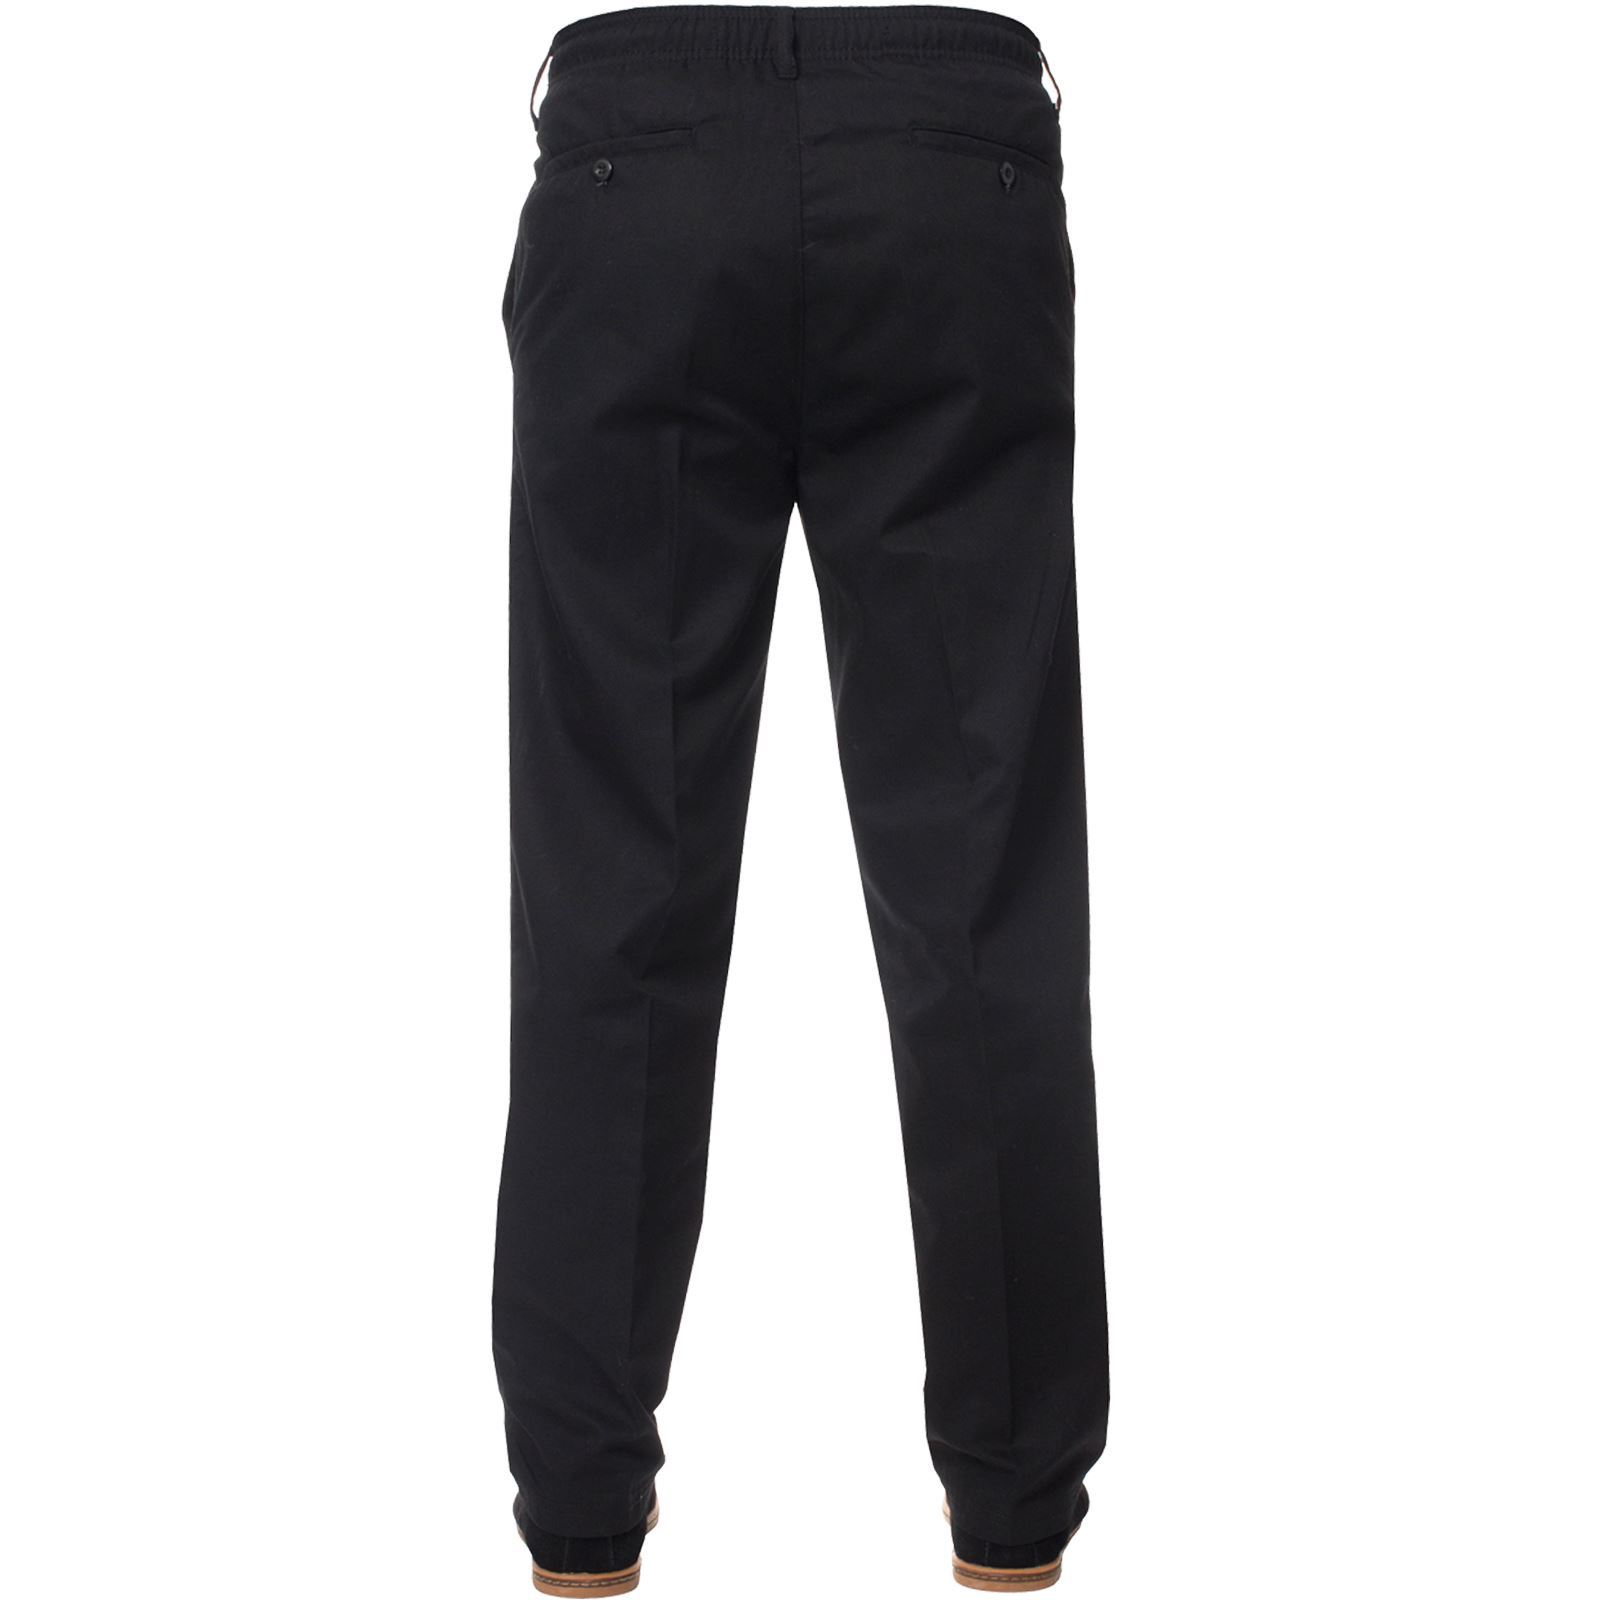 Mens-Rugby-Trousers-Kruze-Elasticated-Waist-Drawstring-Pants-Regular-King-Sizes thumbnail 4